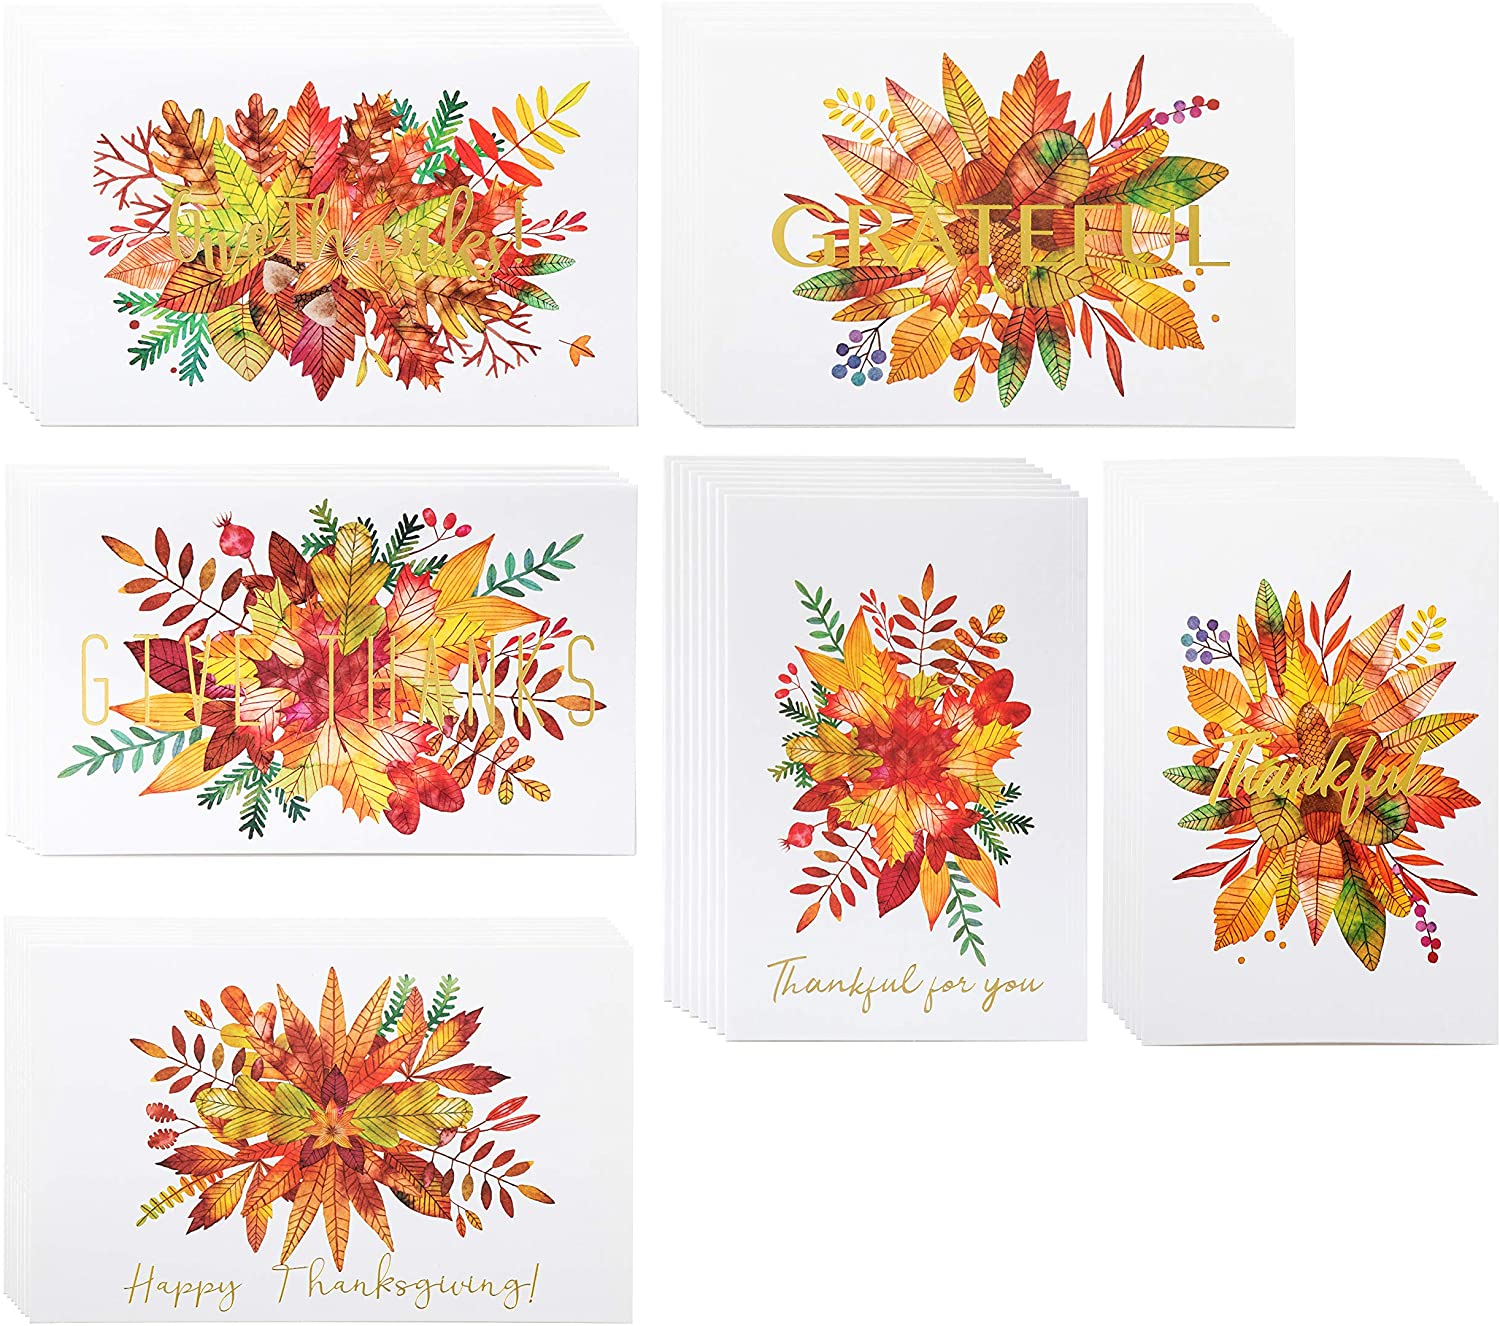 Thanksgiving Cards - 48-Pack Premium Fall Greeting Cards with Gold Foil, Grateful Note Cards, Blank on the Inside, 6 Different Fall Foliage Watercolor Designs, Includes Kraft Envelopes, 4 x 6 Inches